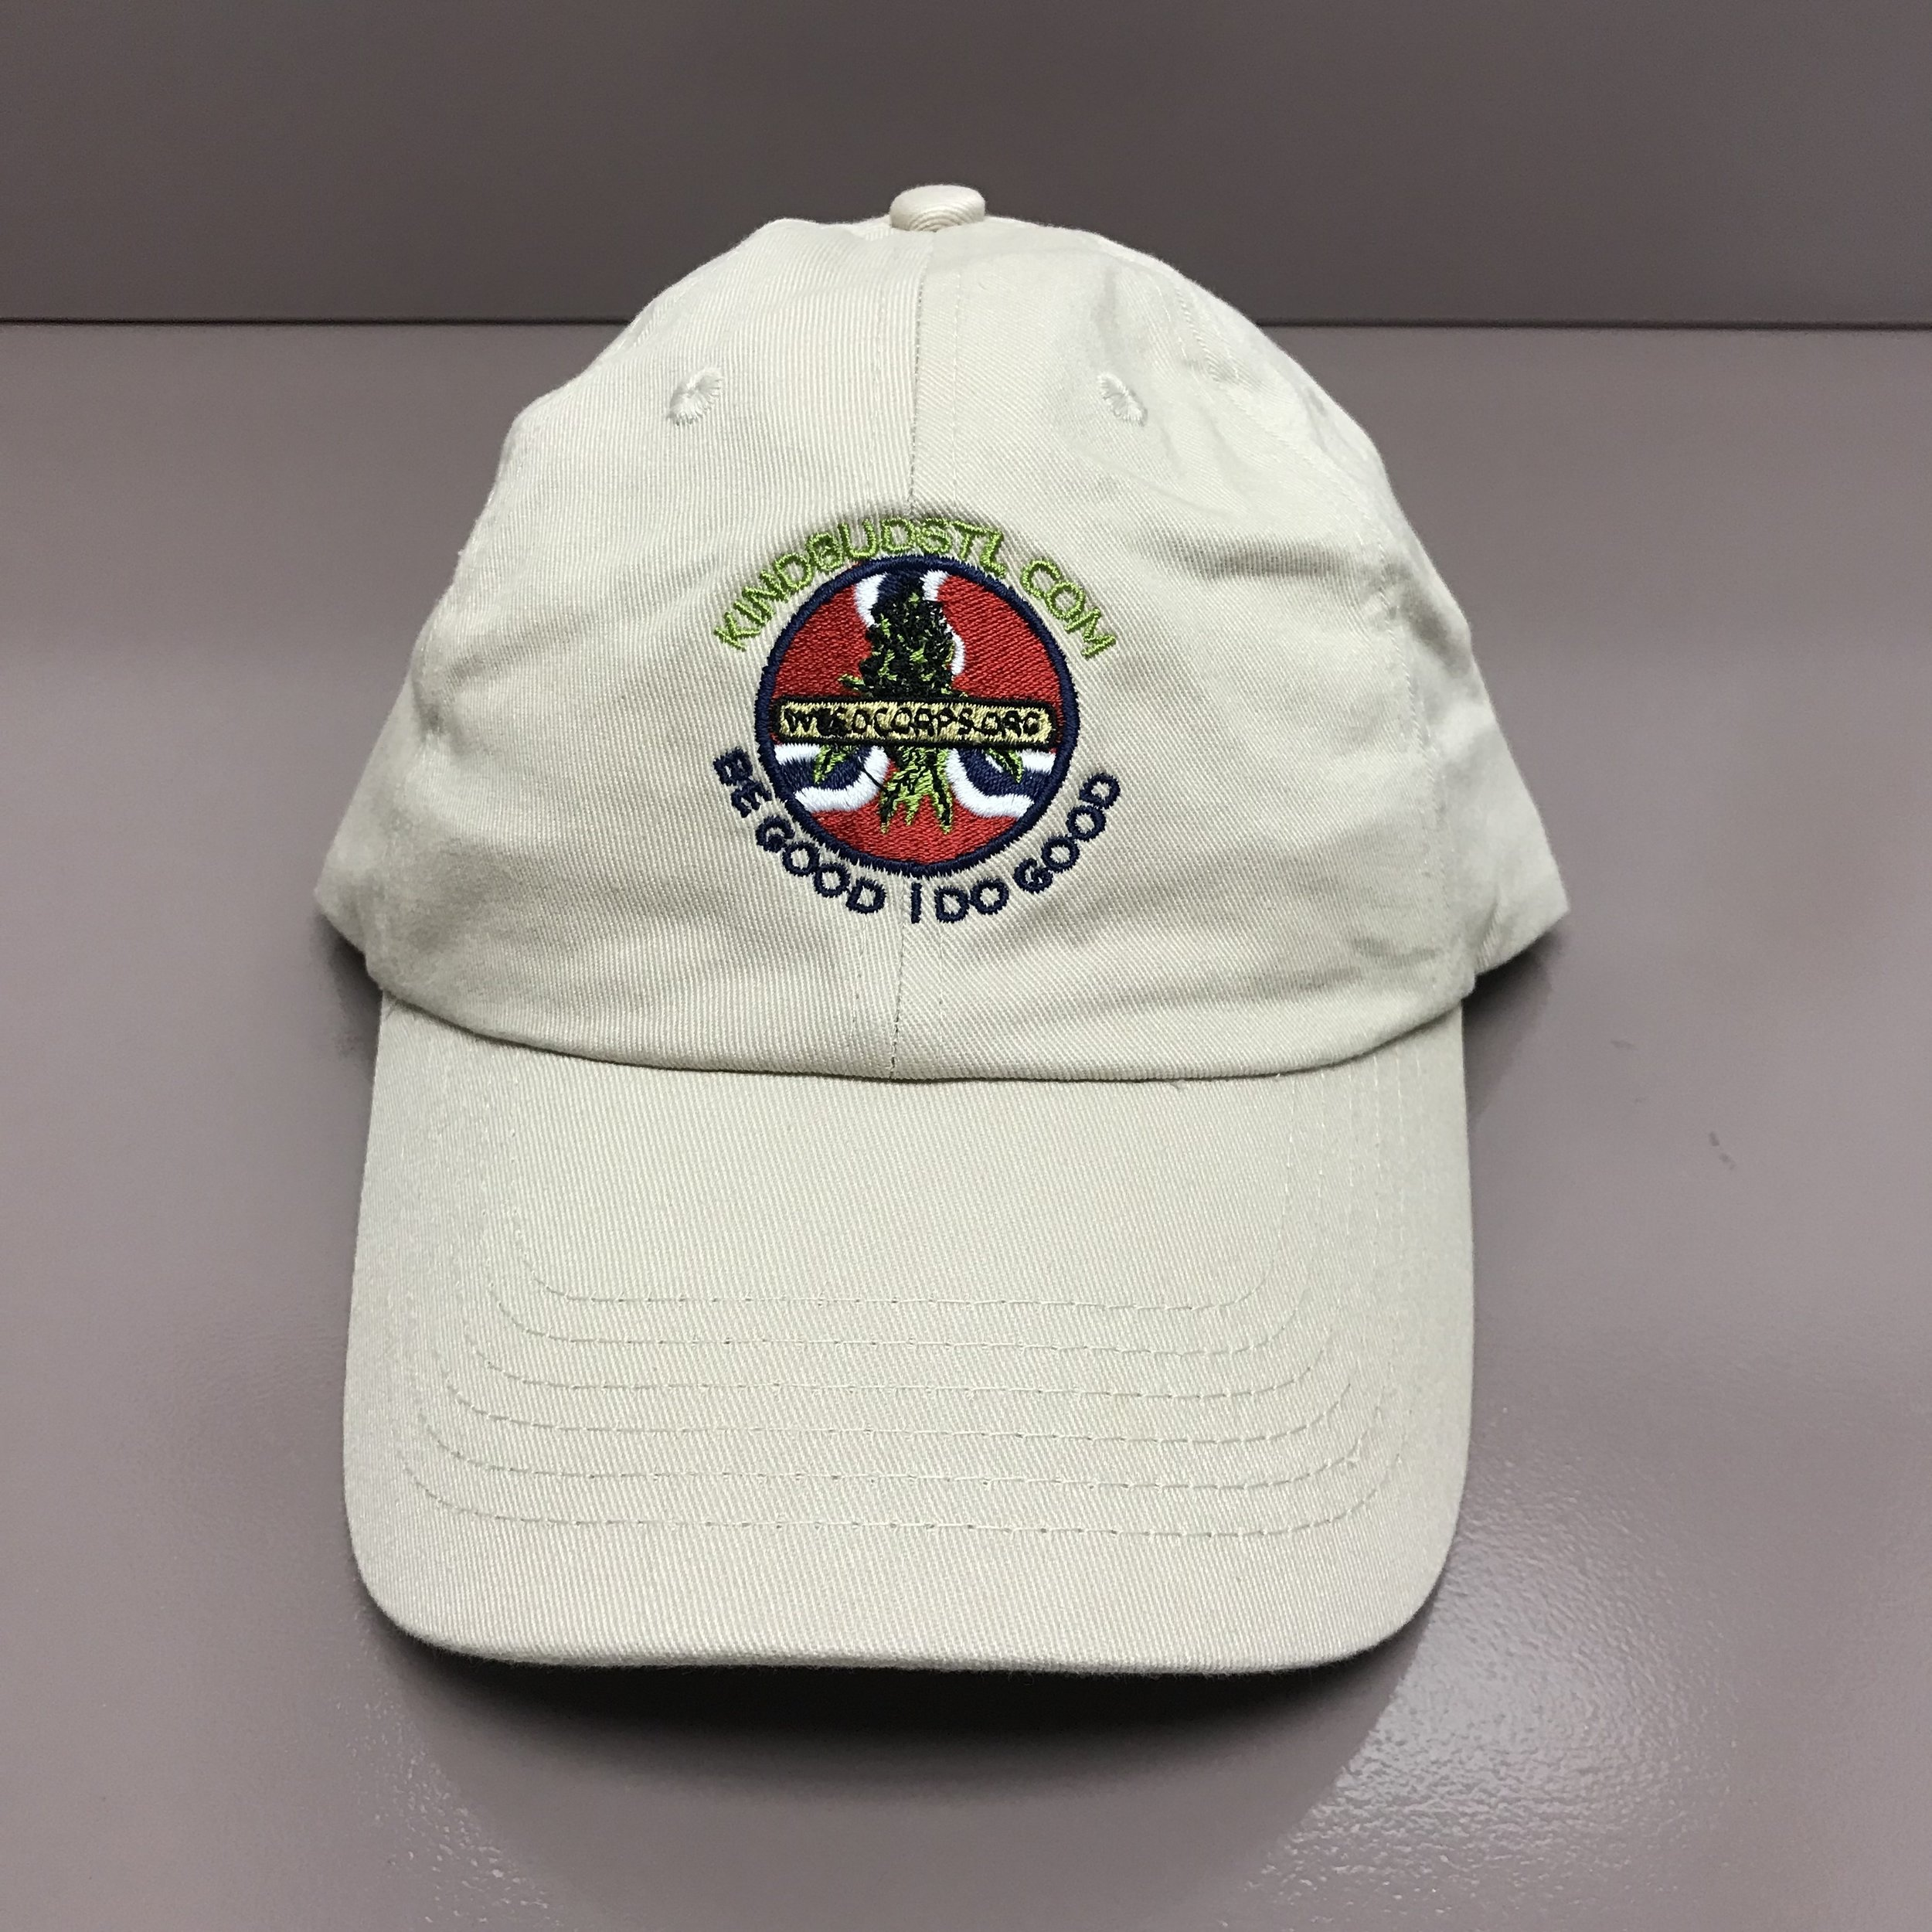 1st Edition Hat (only 12 made)